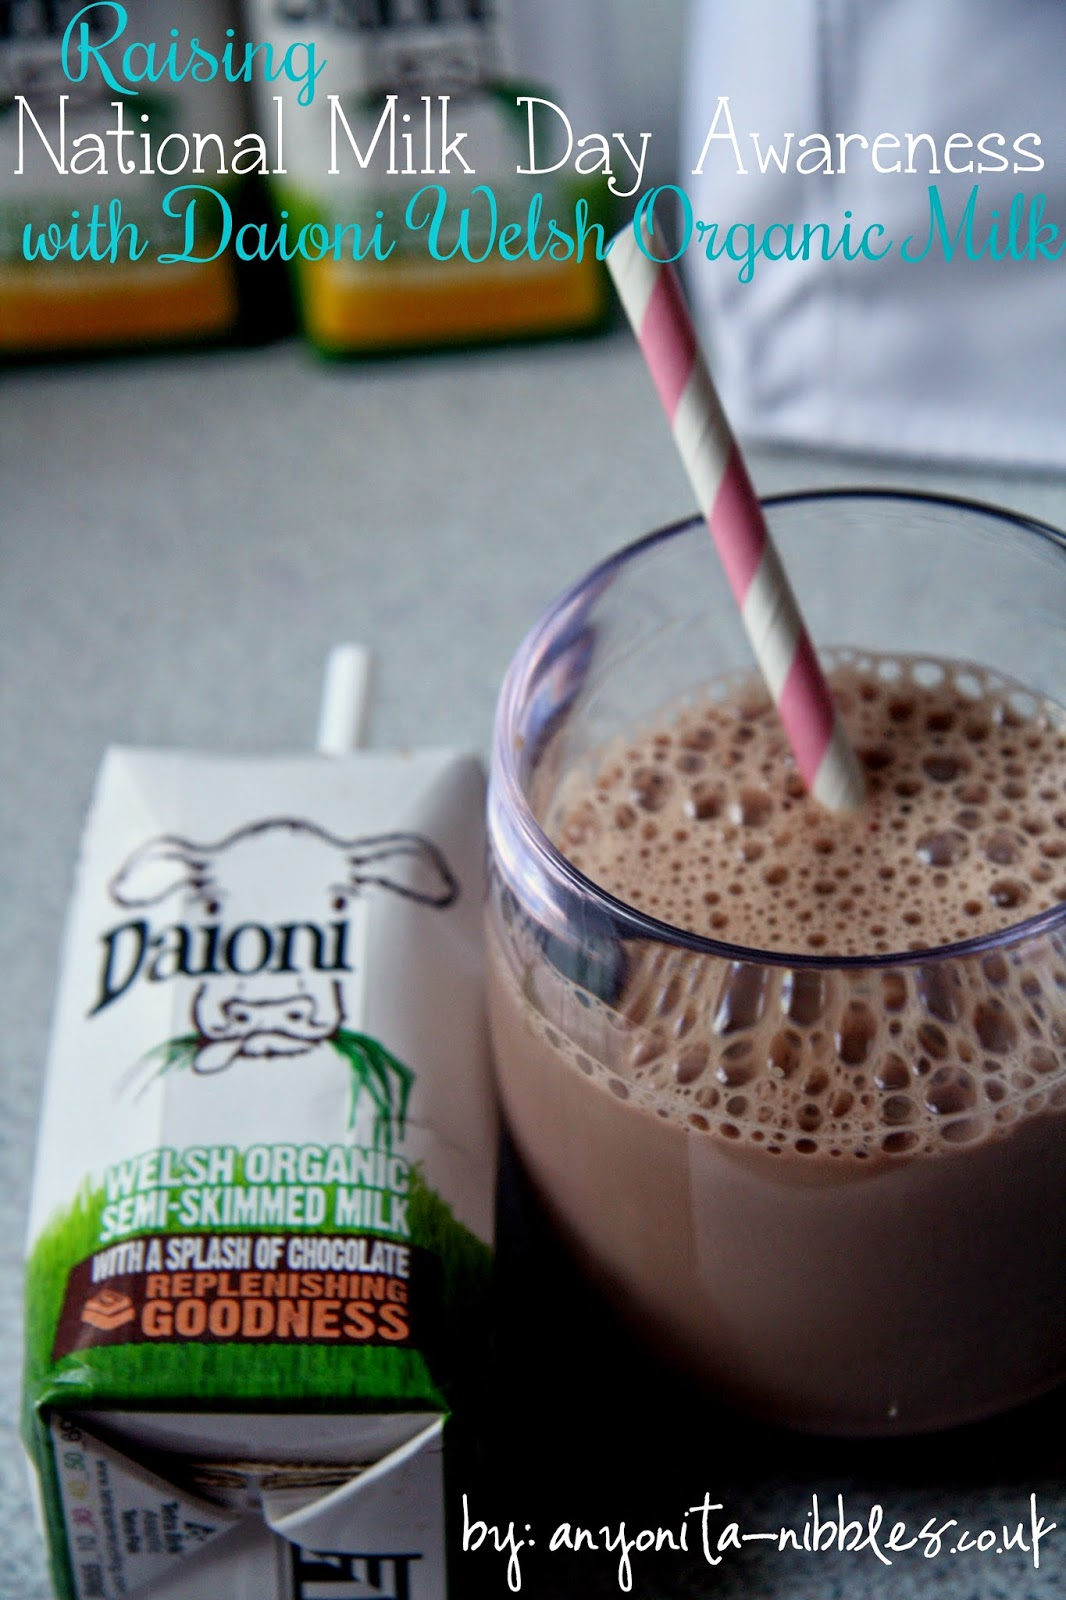 Daioni Welsh Organic Chocolate Milk from Anyonita-nibbles.co.uk